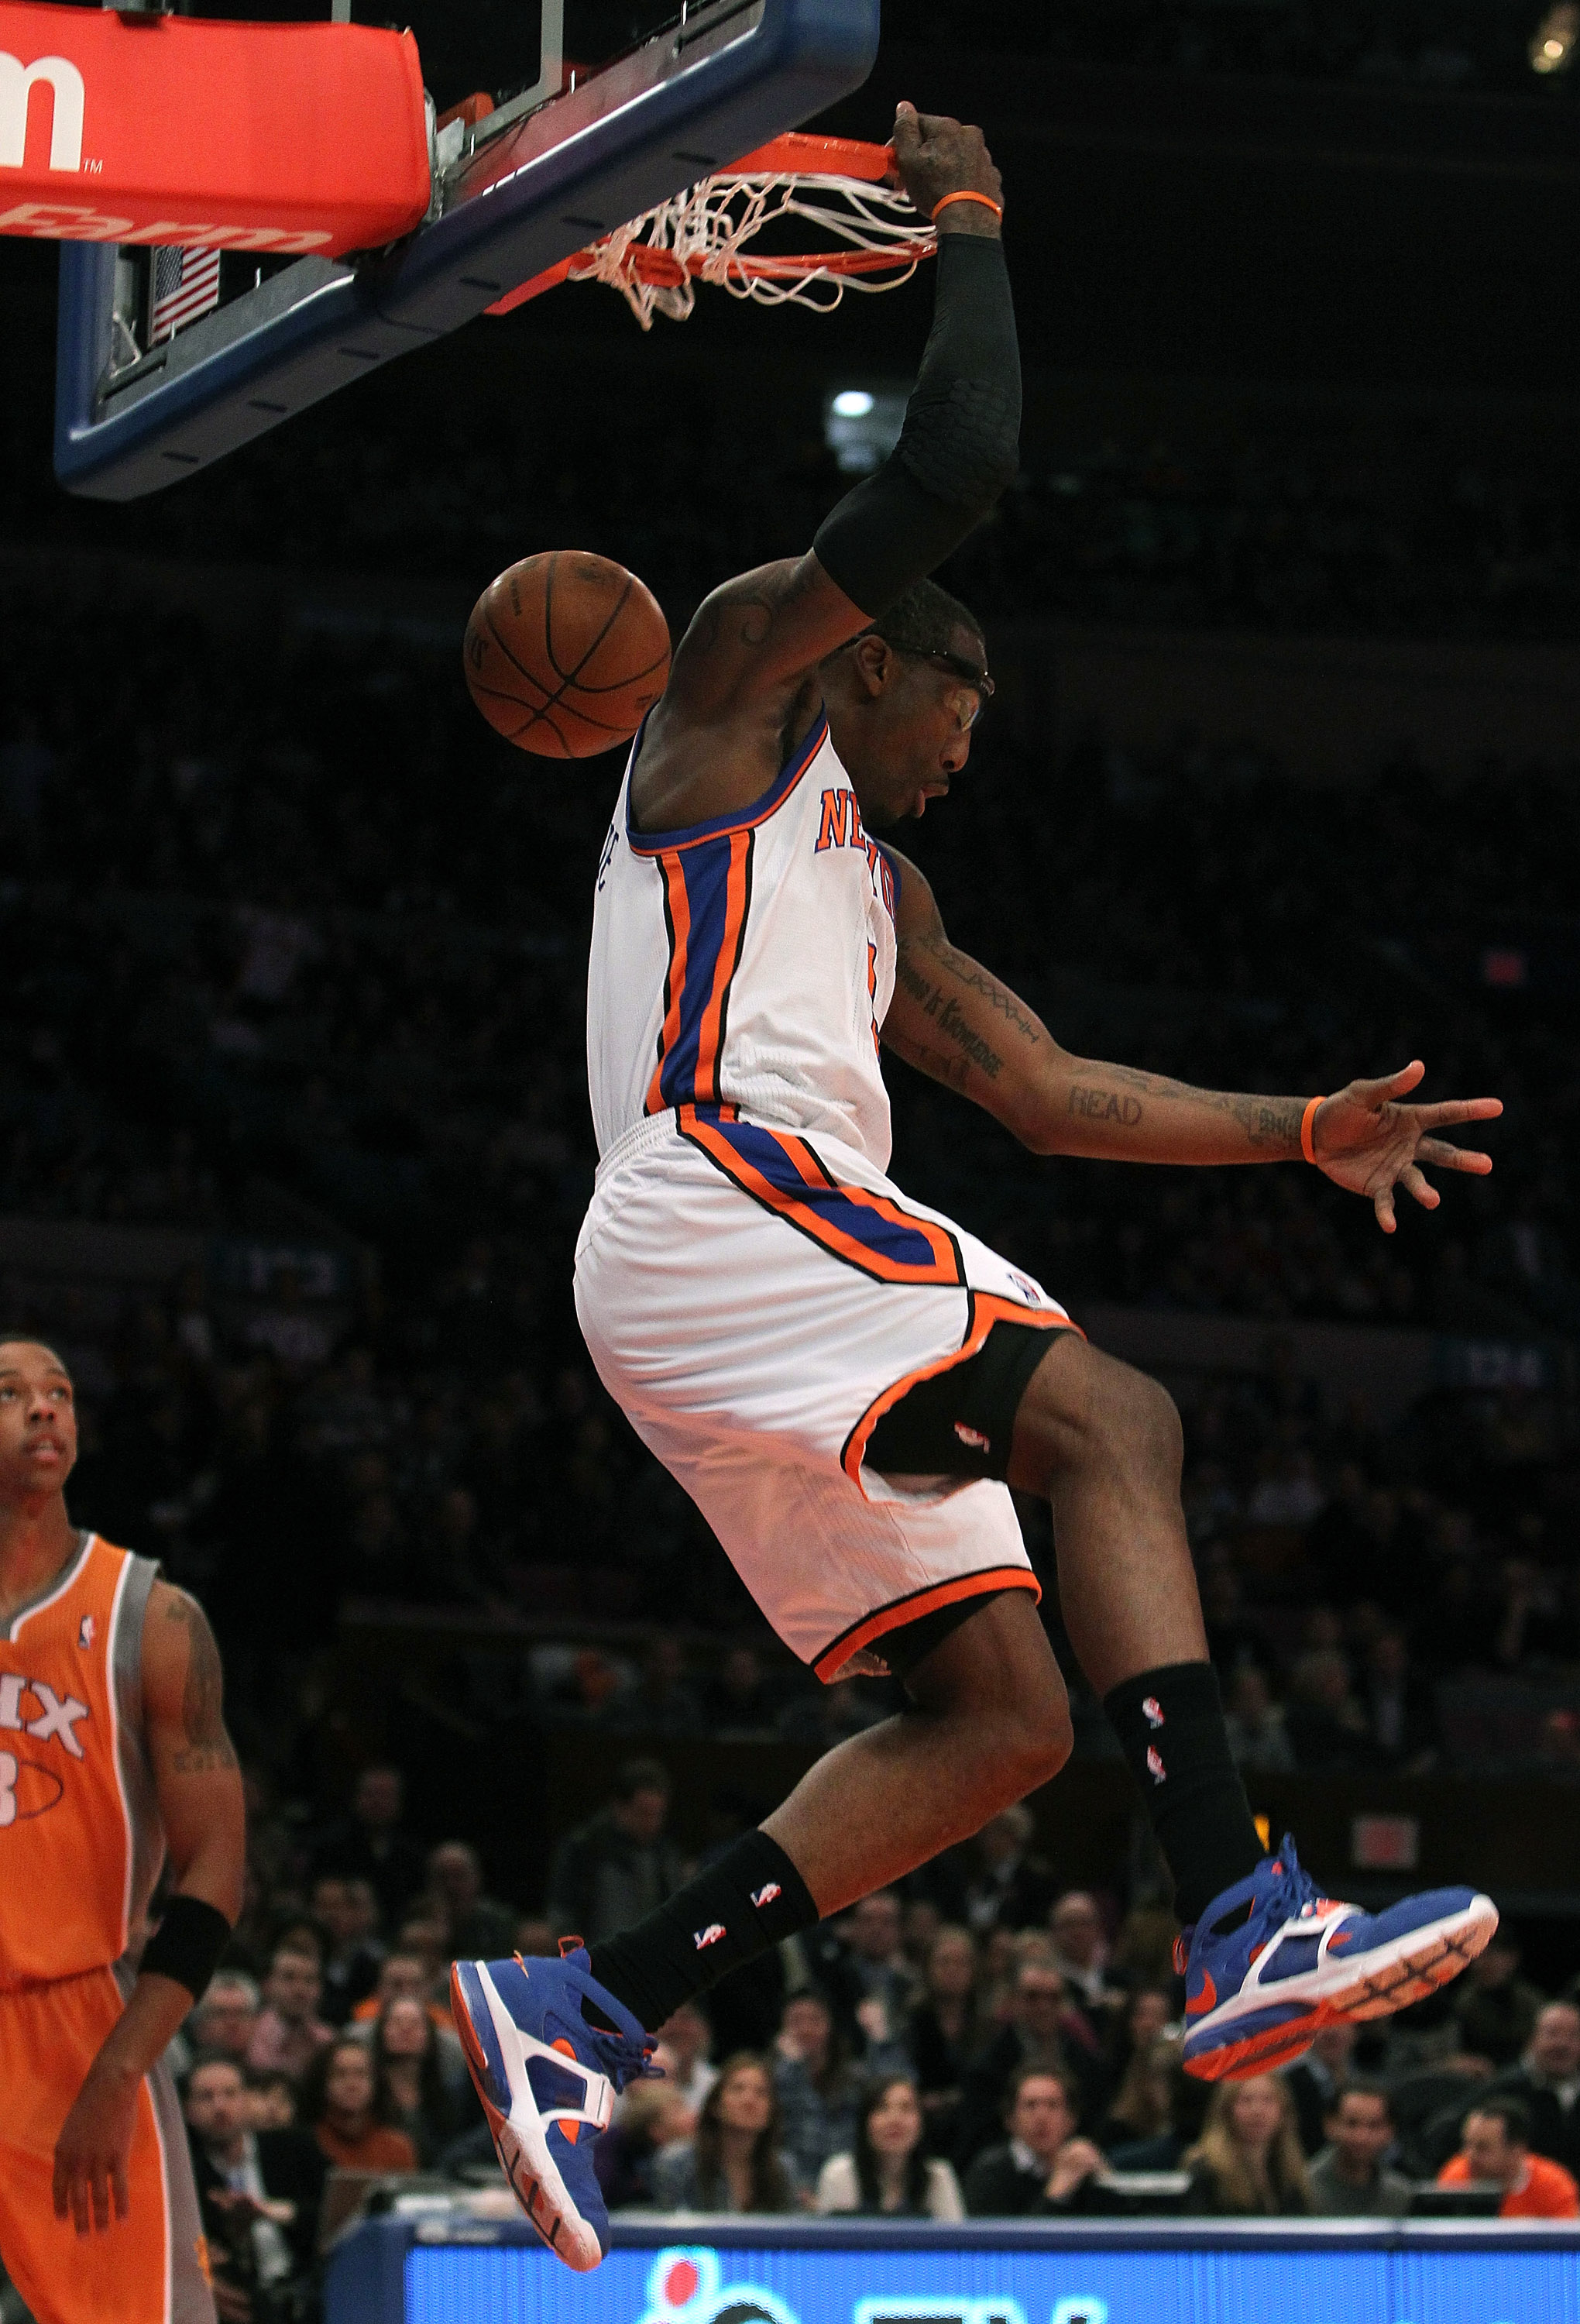 NEW YORK, NY - JANUARY 17: Amar'e Stoudemire #1 of the New York Knicks dunks the ball against the Phoenix Suns at Madison Square Garden on January 17, 2011 in New York City. NOTE TO USER: User expressly acknowledges and agrees that, by downloading and or